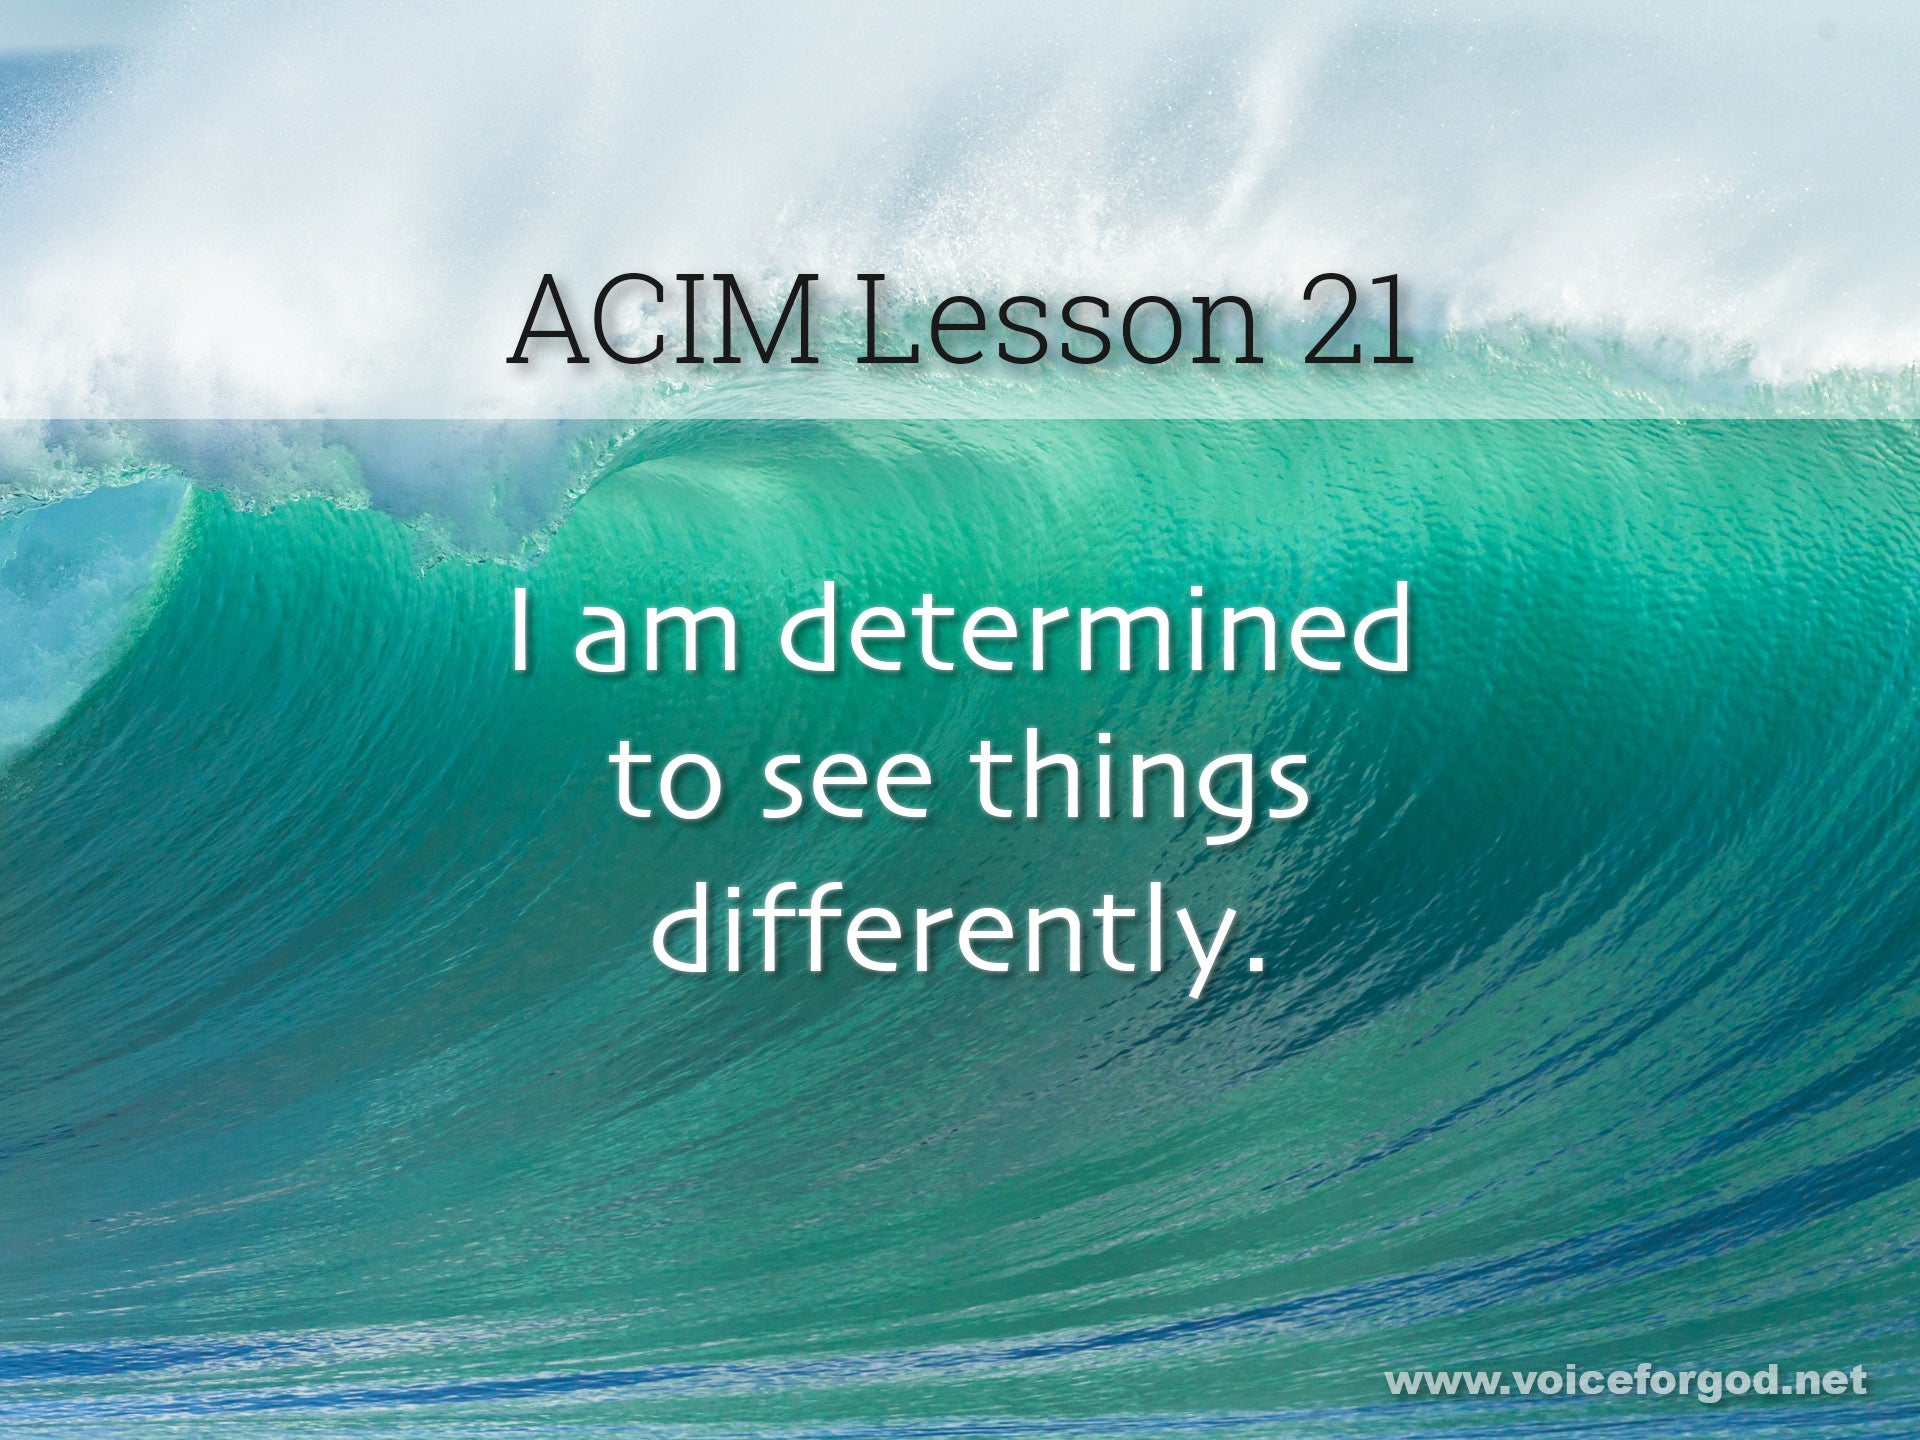 ACIM Lesson 21 - A Course in Miracles Workbook Lesson 21